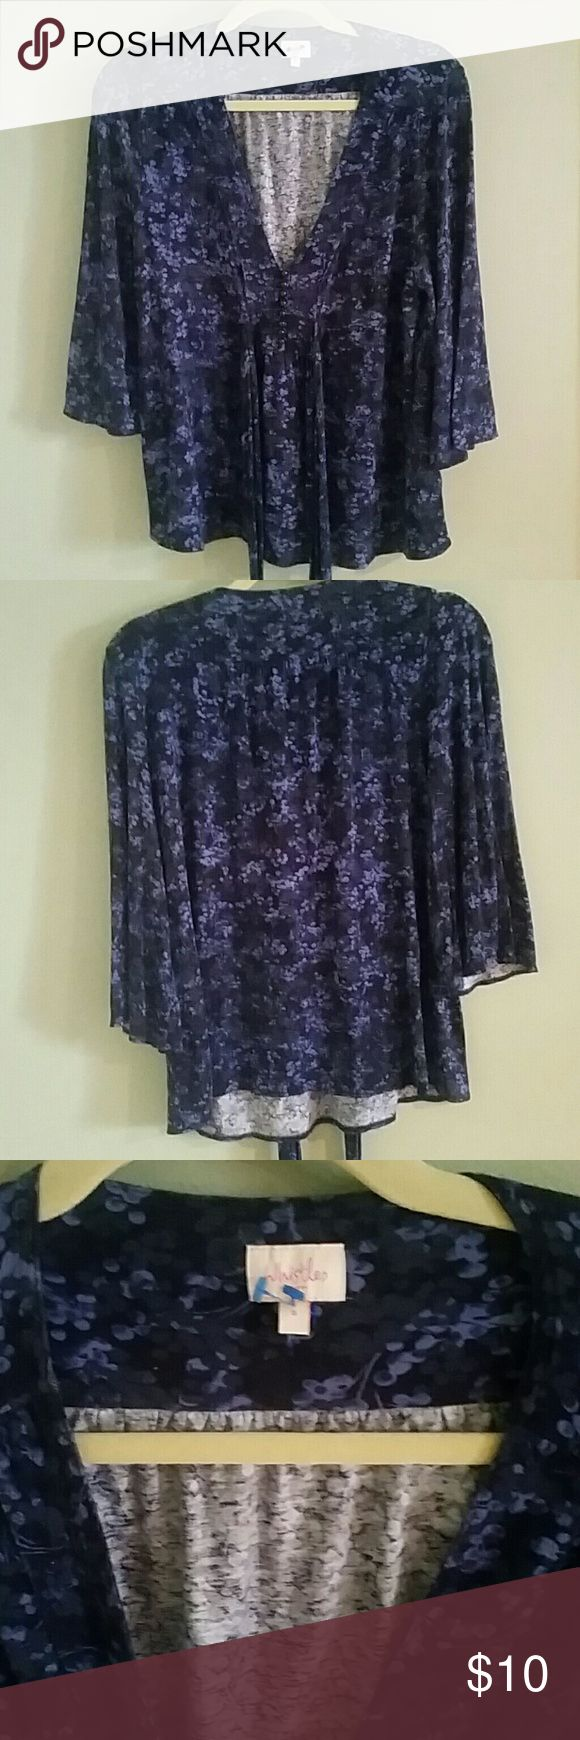 *SALE* Whistles   Floral Blouse Whistles London size 3 gently used v neck babydoll top with three quarter sleeves, tie back for fit and pretty details at neckline. Minor piling. Fits like size small. Whistles Tops Blouses